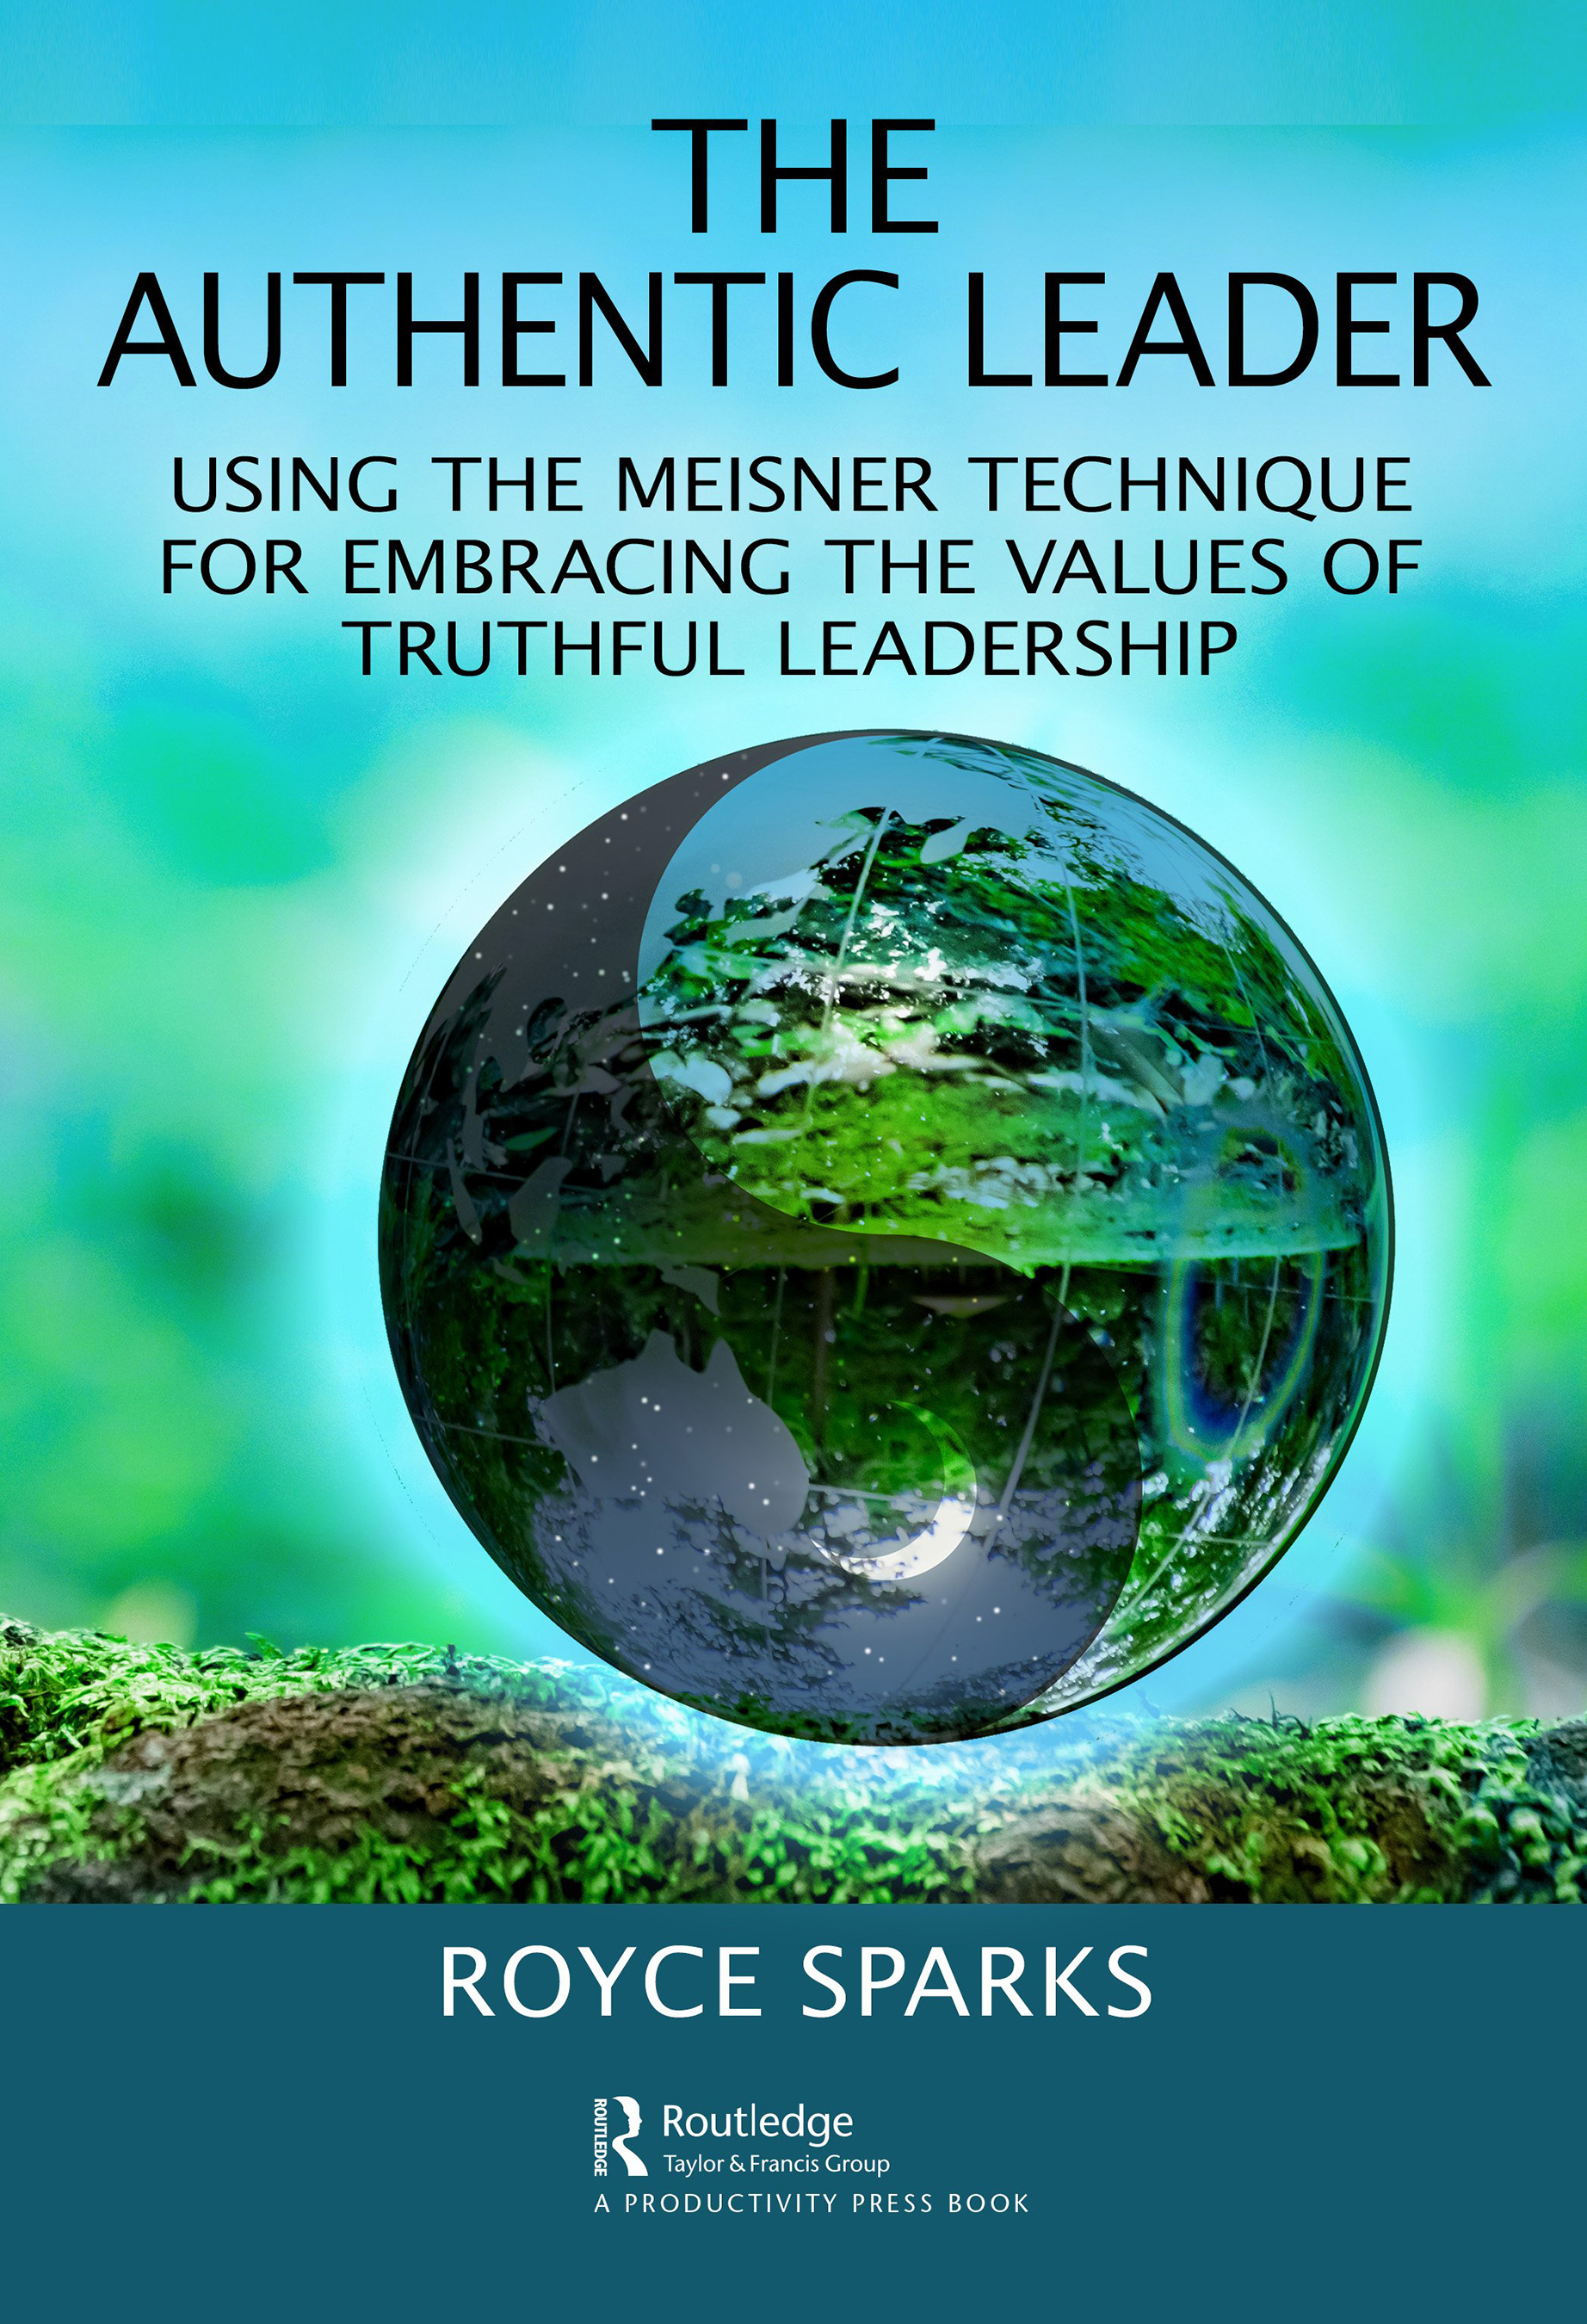 The Authentic Leader: Using the Meisner Technique for Embracing the Values of Truthful Leadership book cover